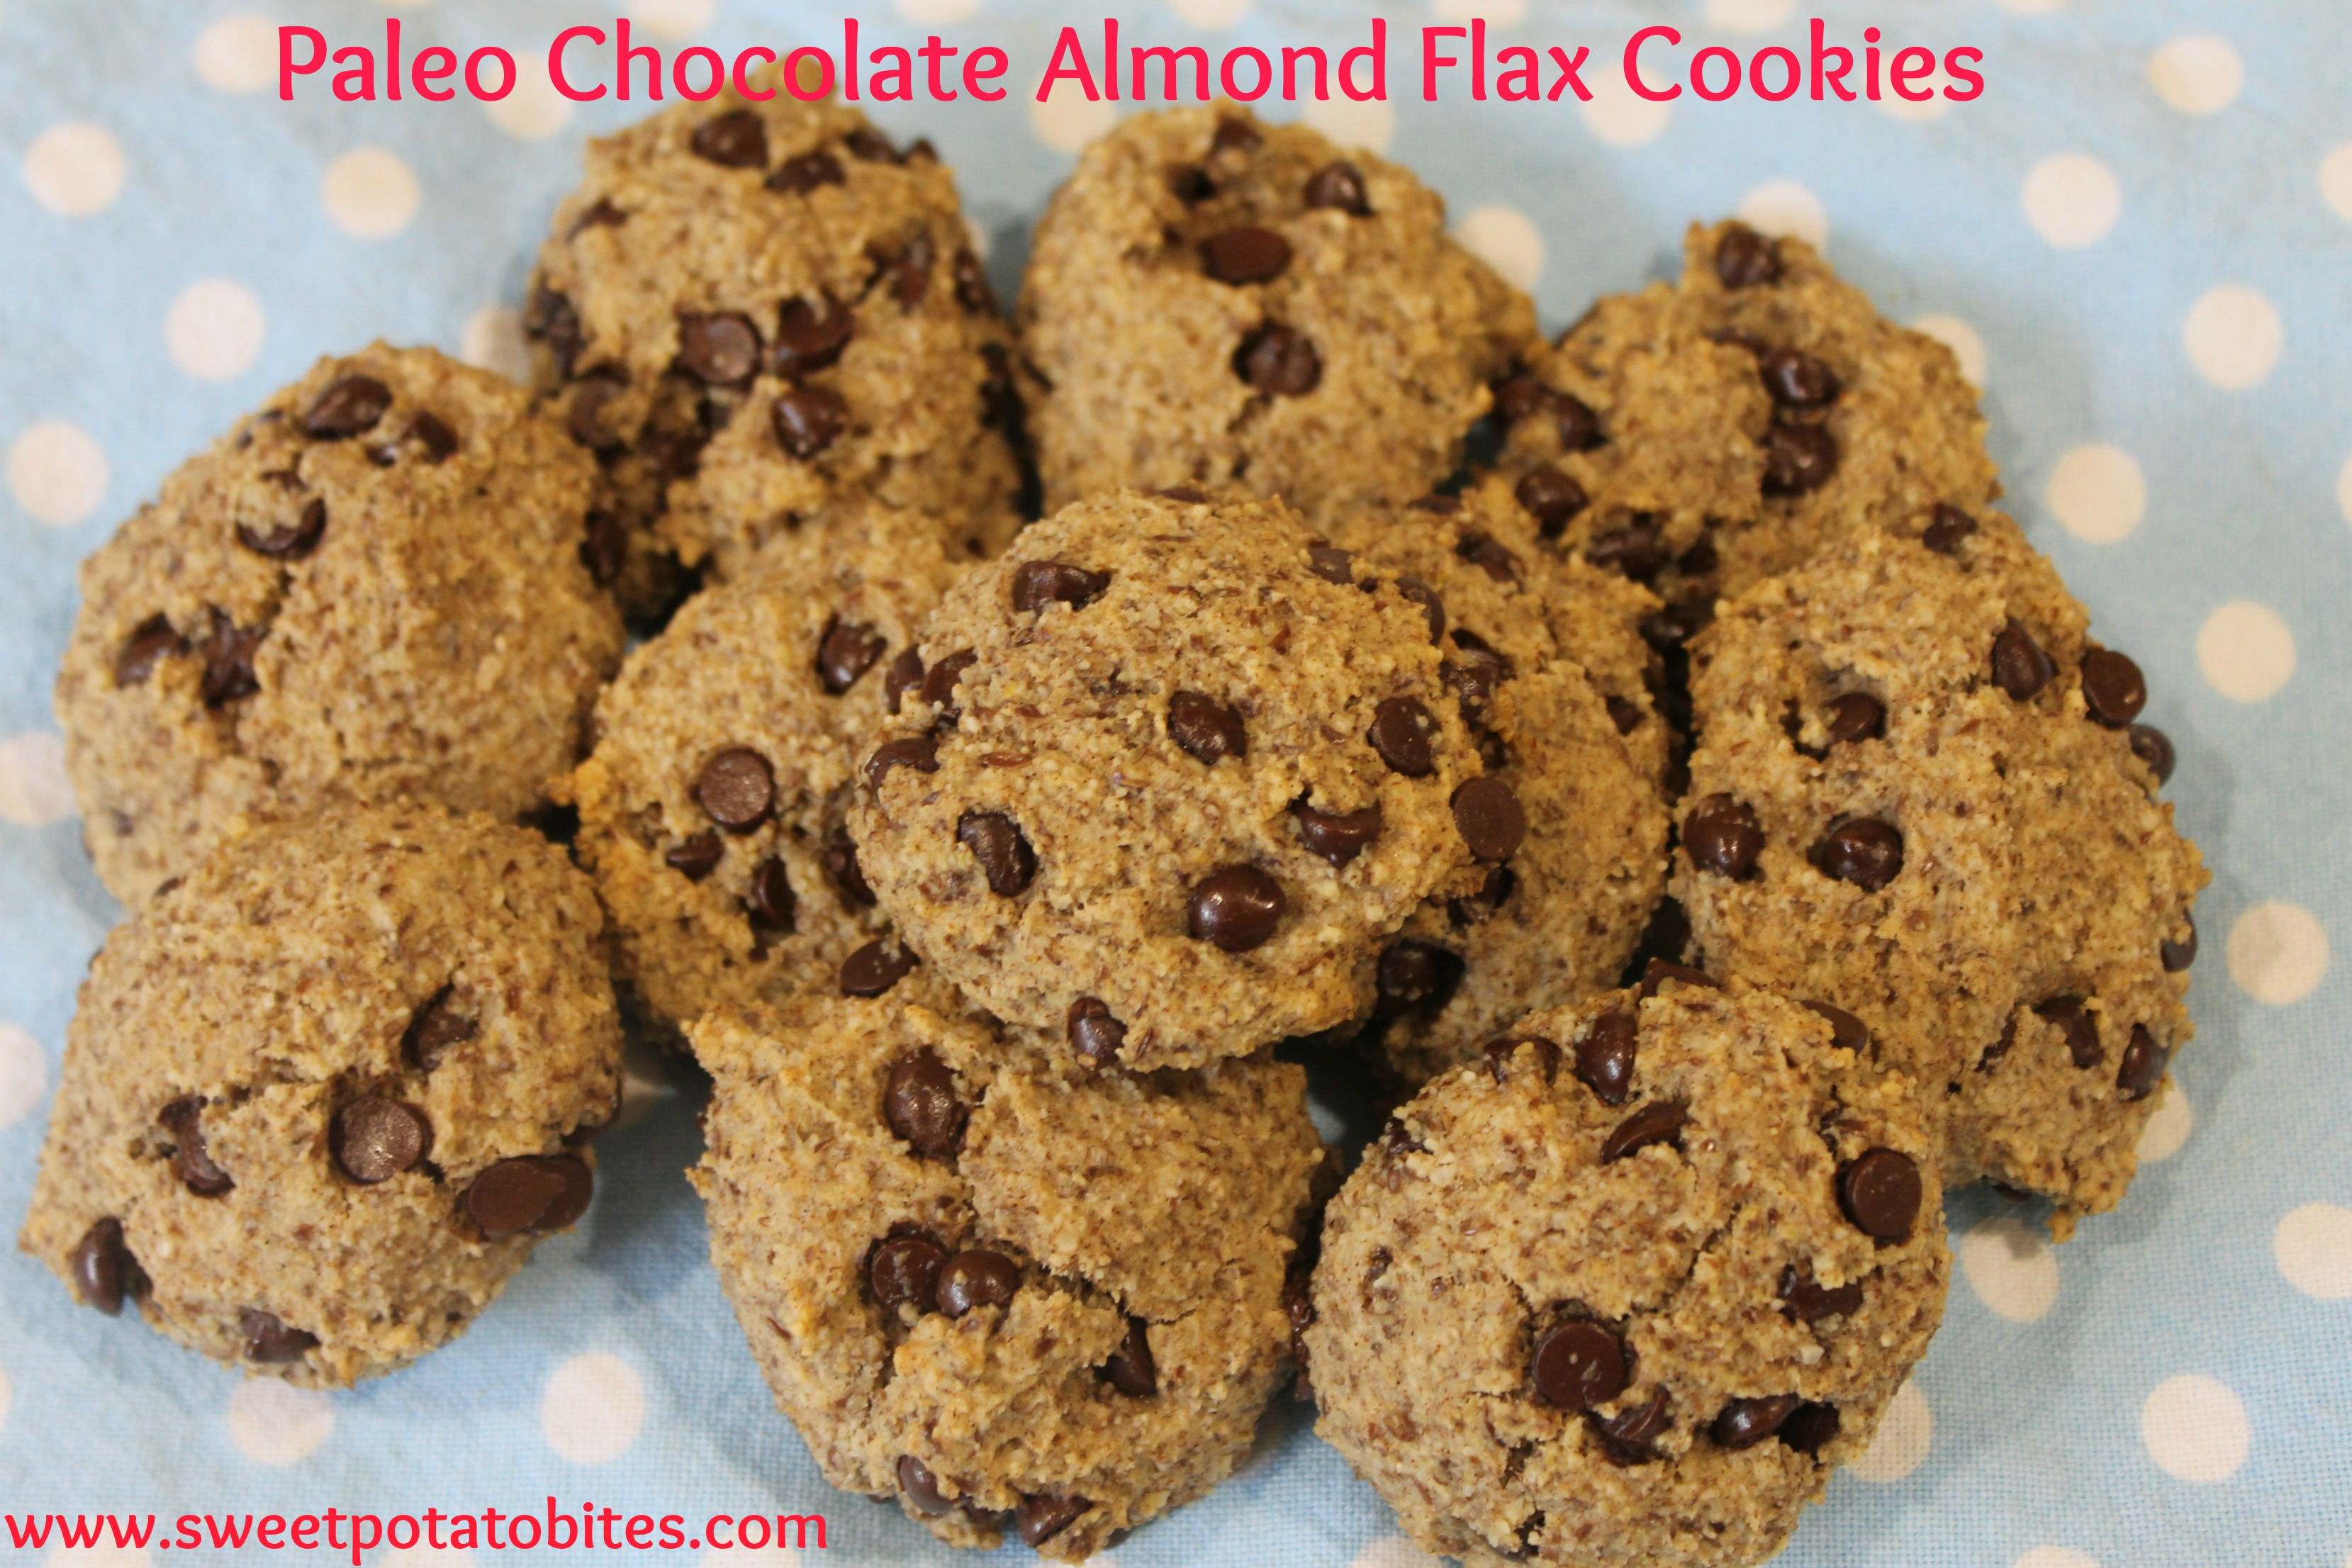 Paleo Chocolate Almond Flax Cookies